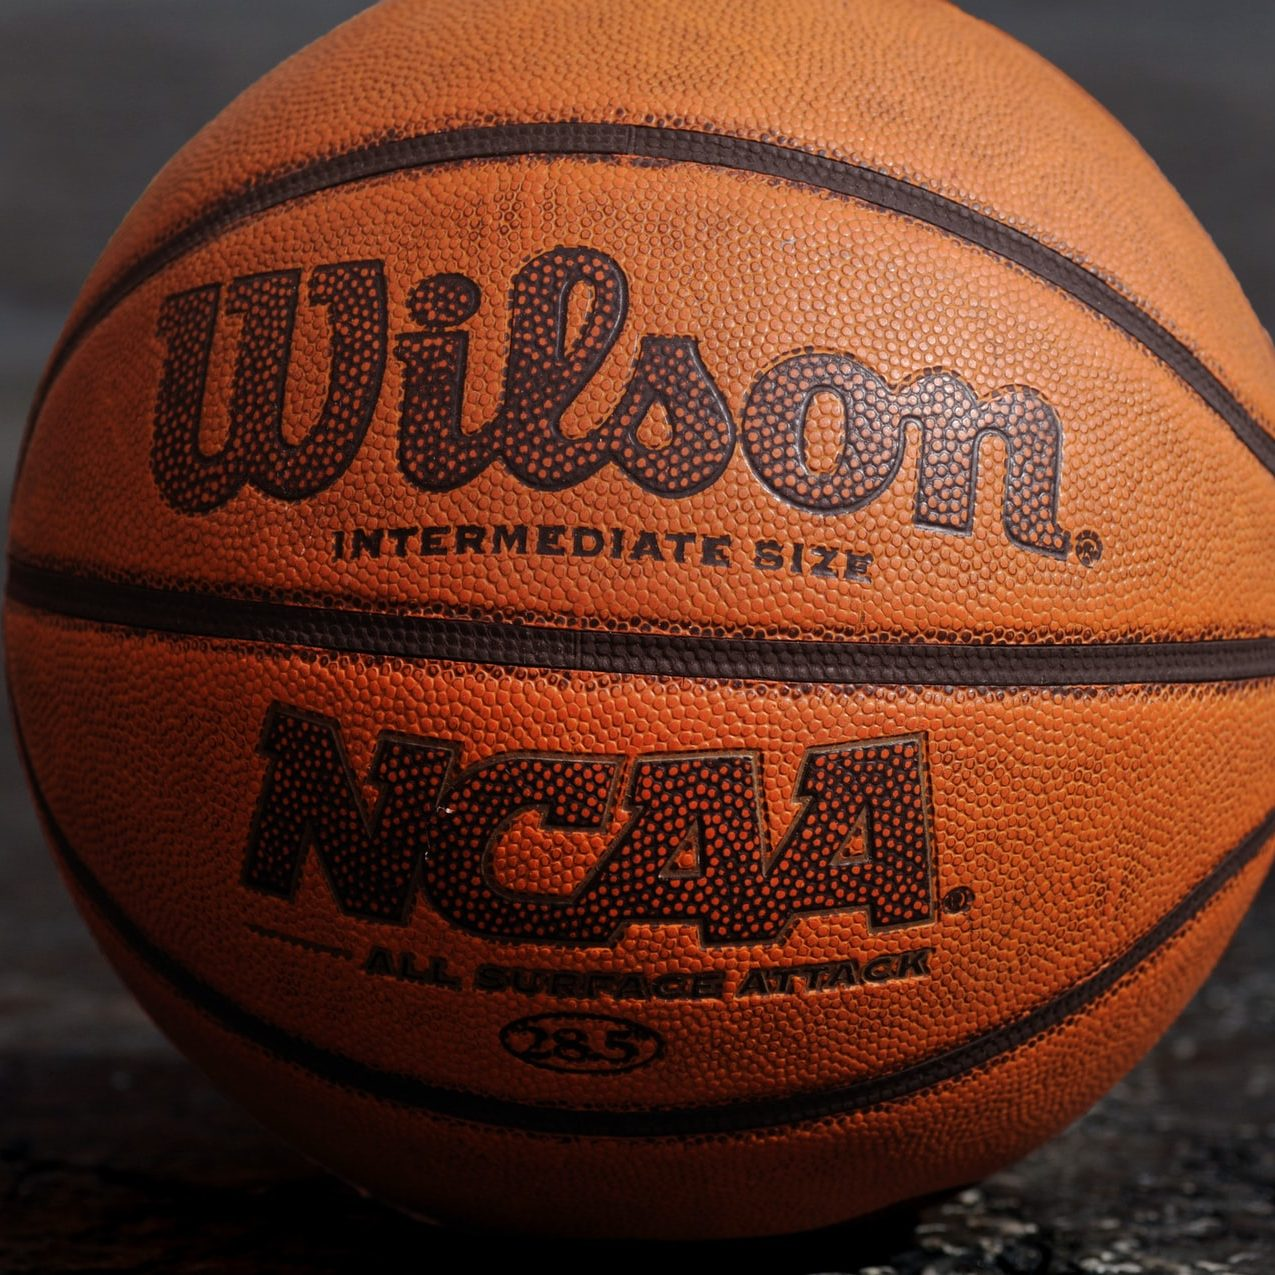 Furman is a Cinderella Team for the 2021 NCAA Tournament